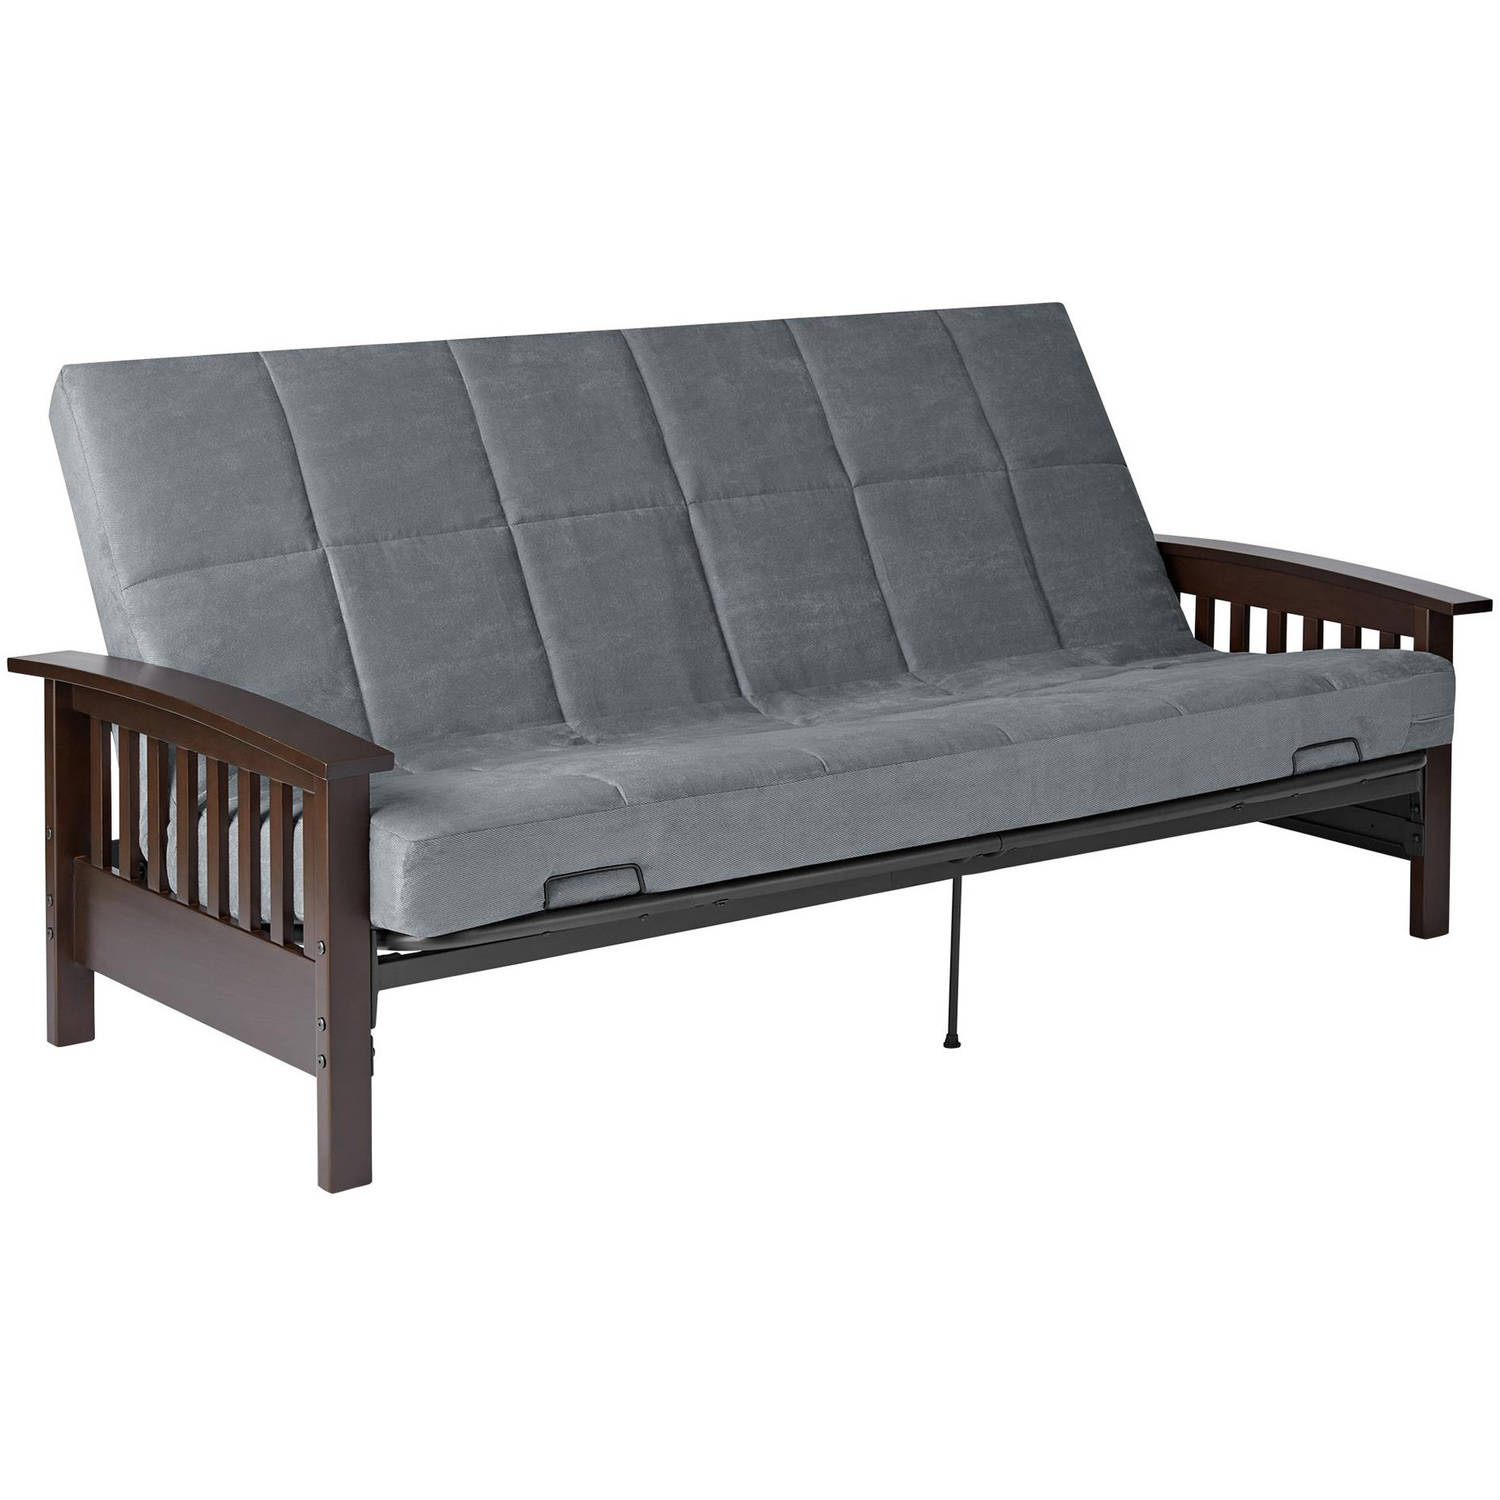 Better Homes and Gardens Mission Wood Arm Futon, Multiple Colors by Dorel Home Products